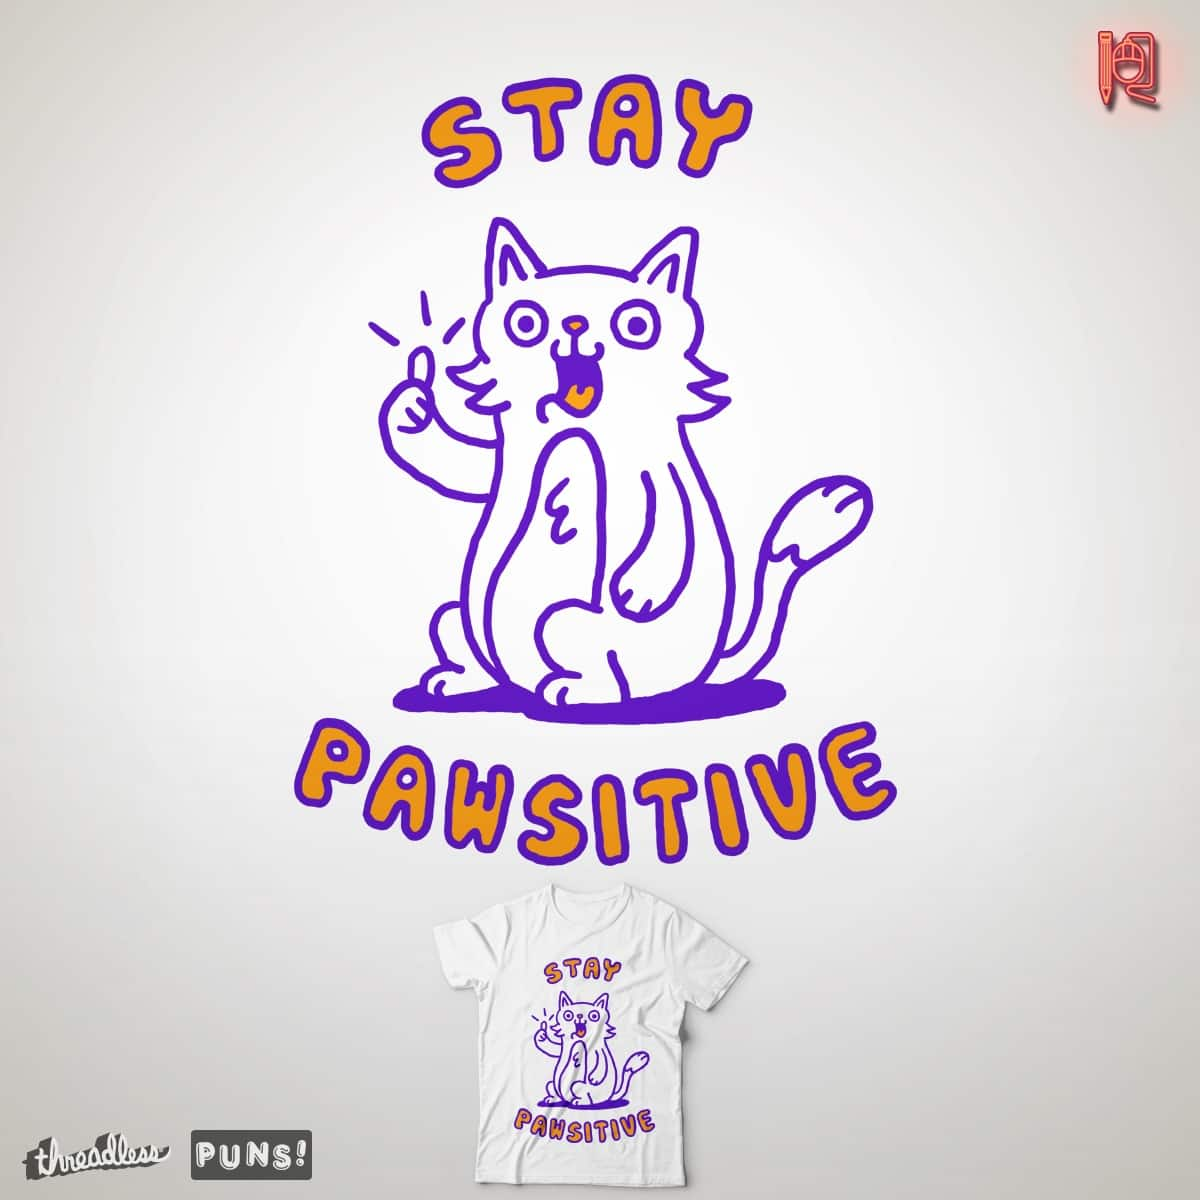 Stay pawsitive by rodrigobhz on Threadless